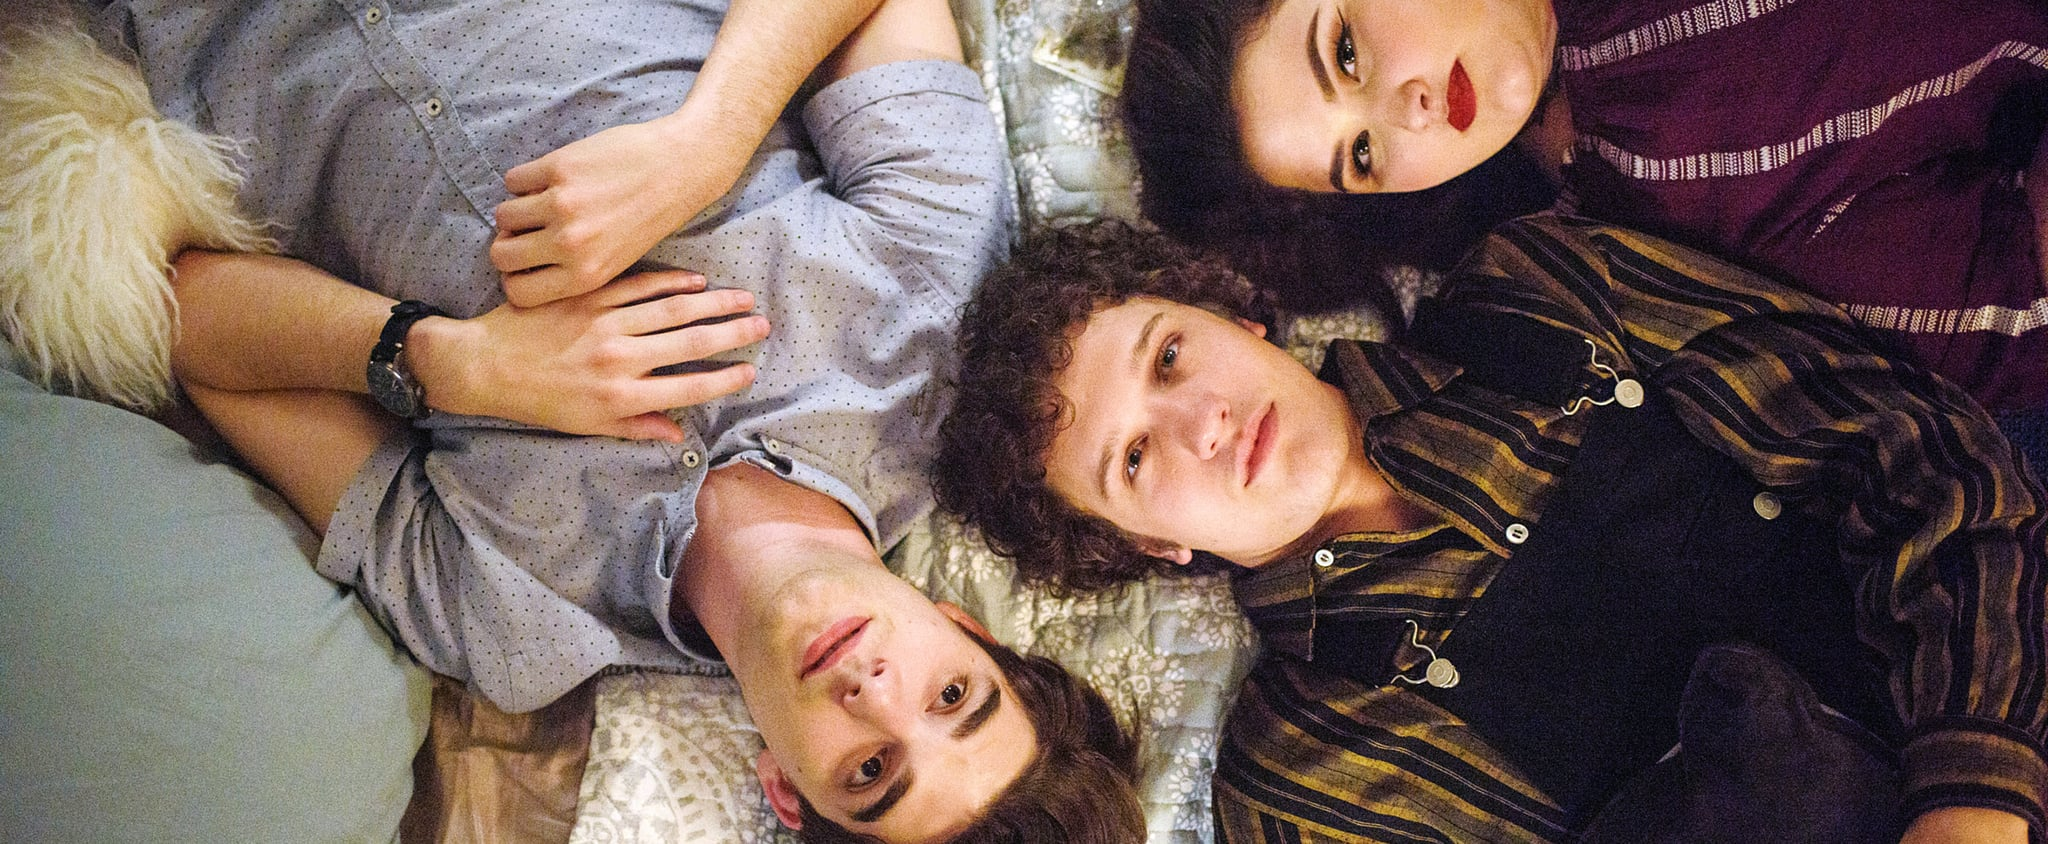 LGBTQ Movies to Watch Based on Your Mood